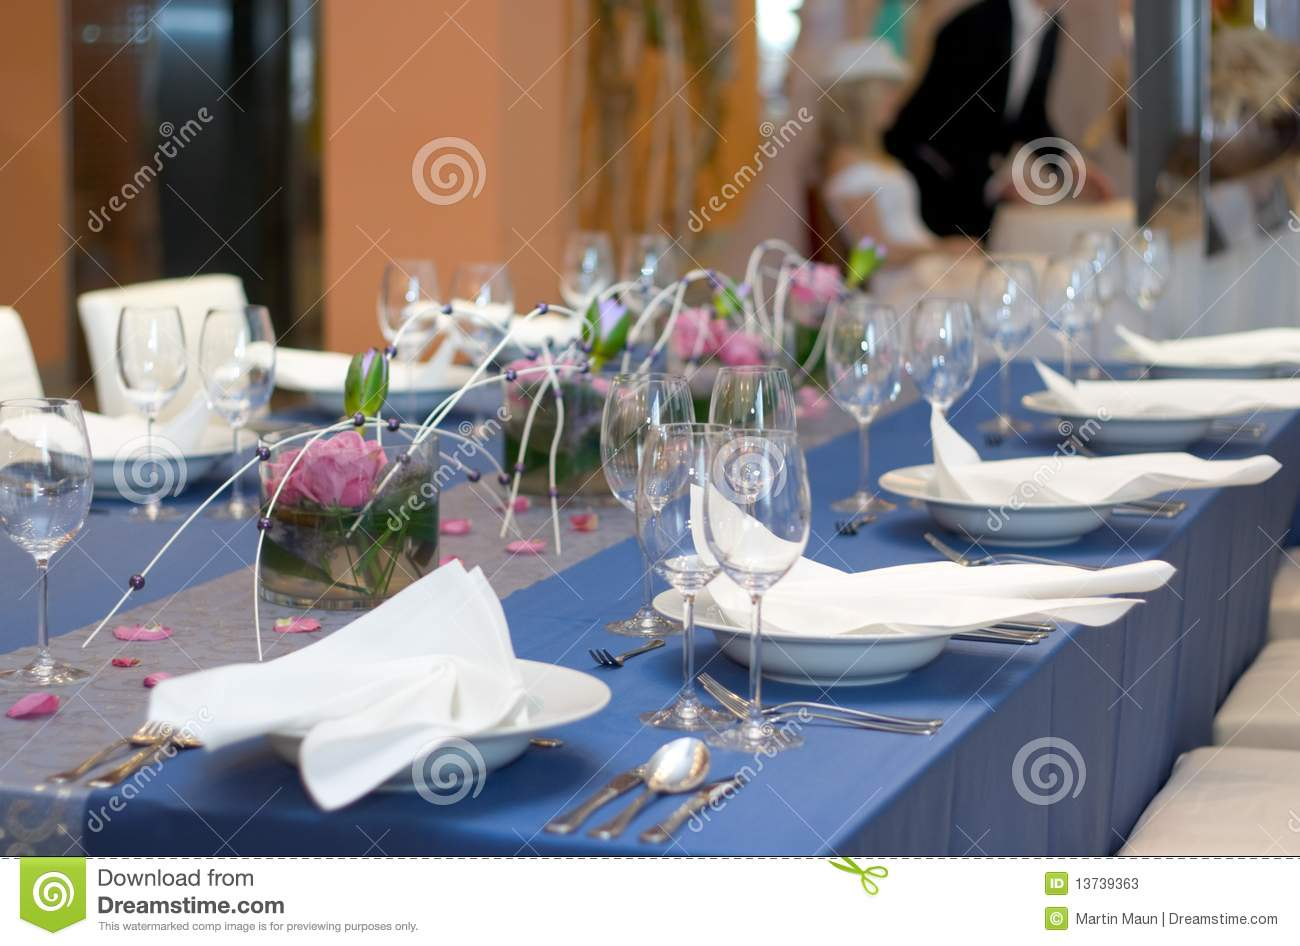 How To Set A Dinner Table blue table set for dinner stock photos - image: 13739363